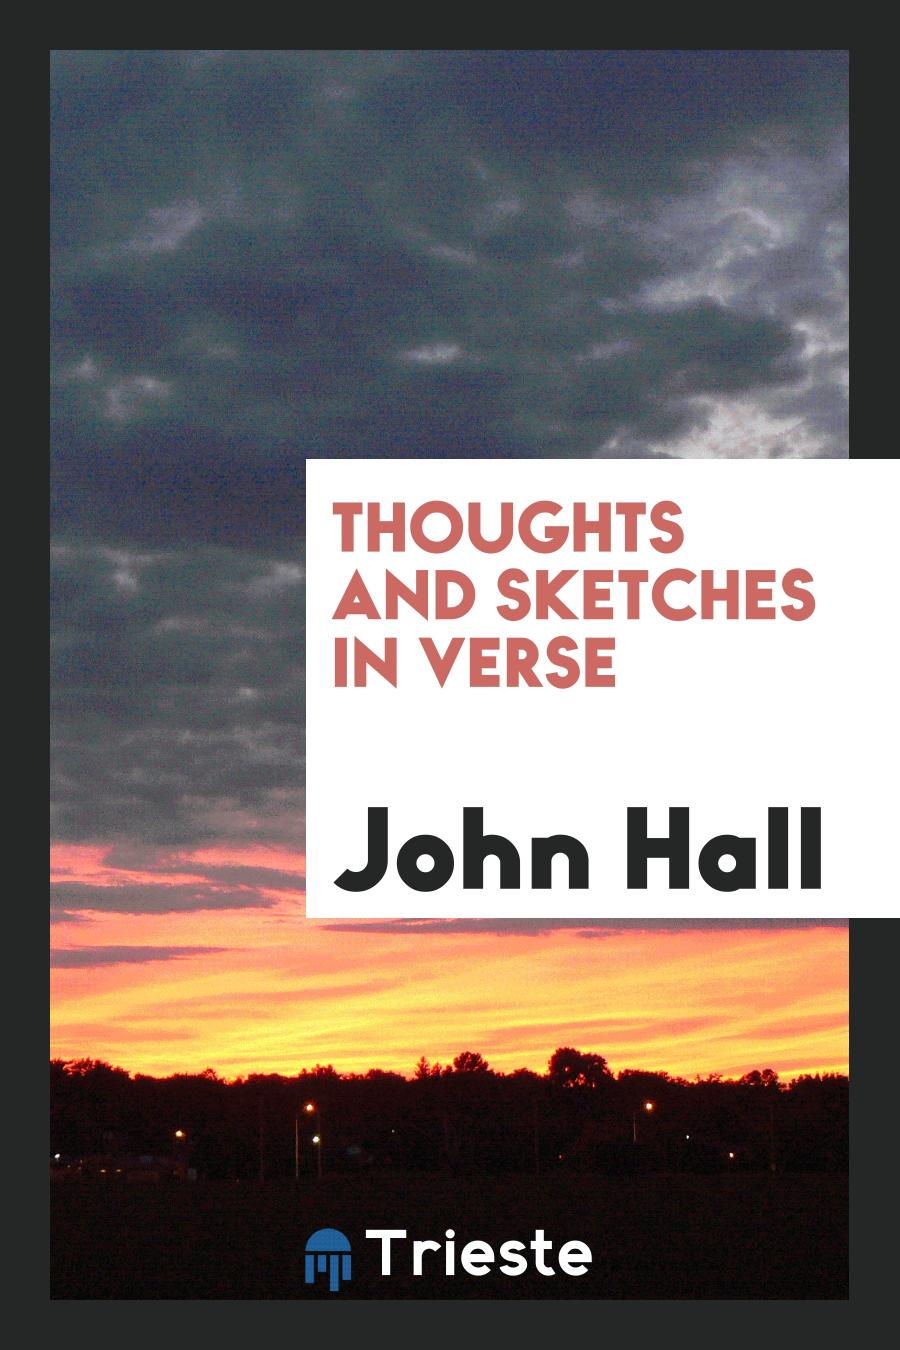 John Hall - Thoughts and Sketches in Verse